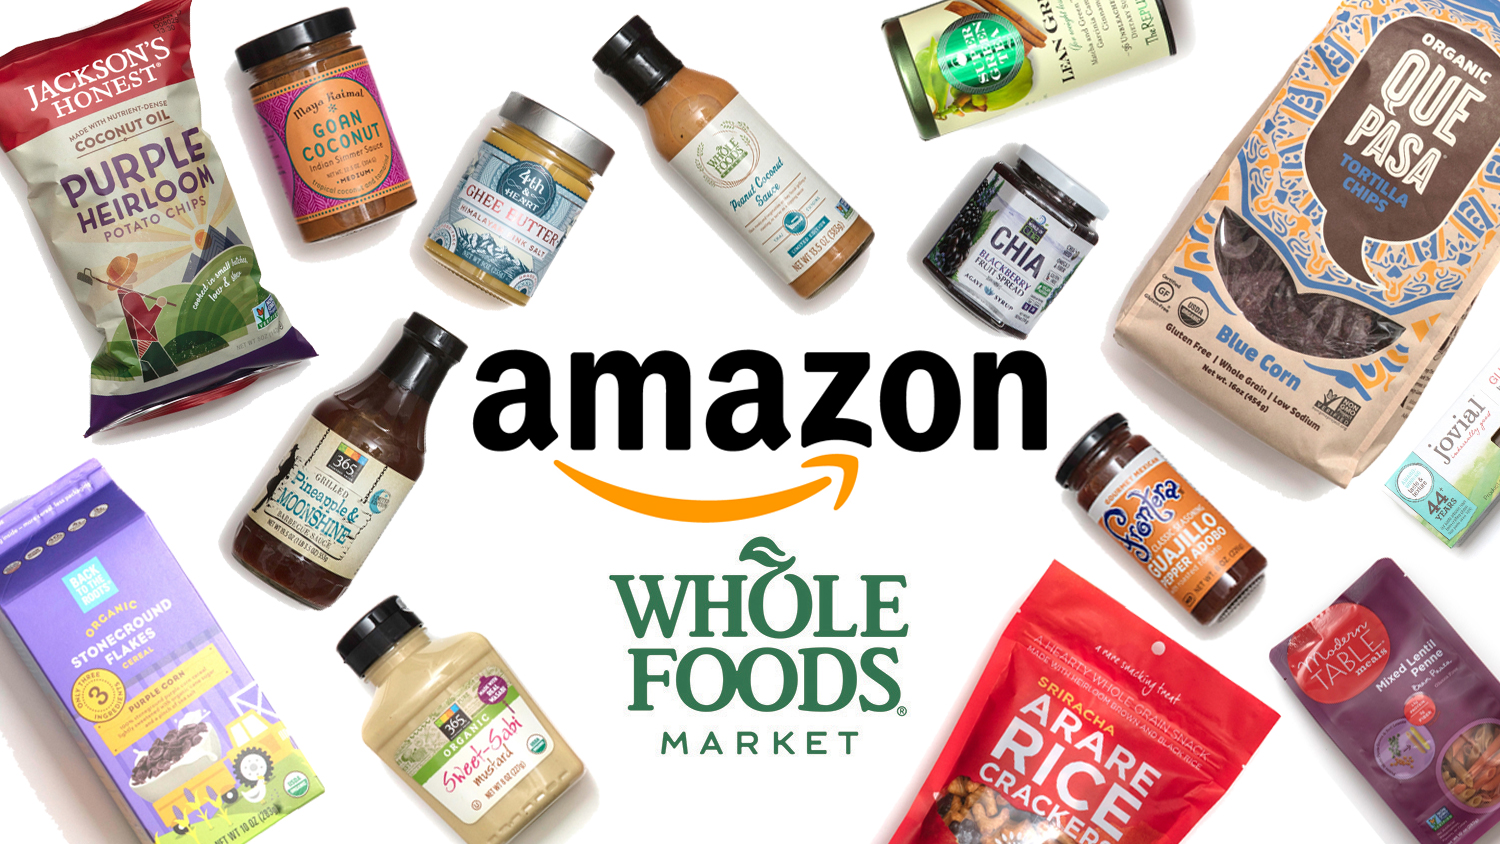 Amazon's Whole Foods Discounts Expand to 12 More States